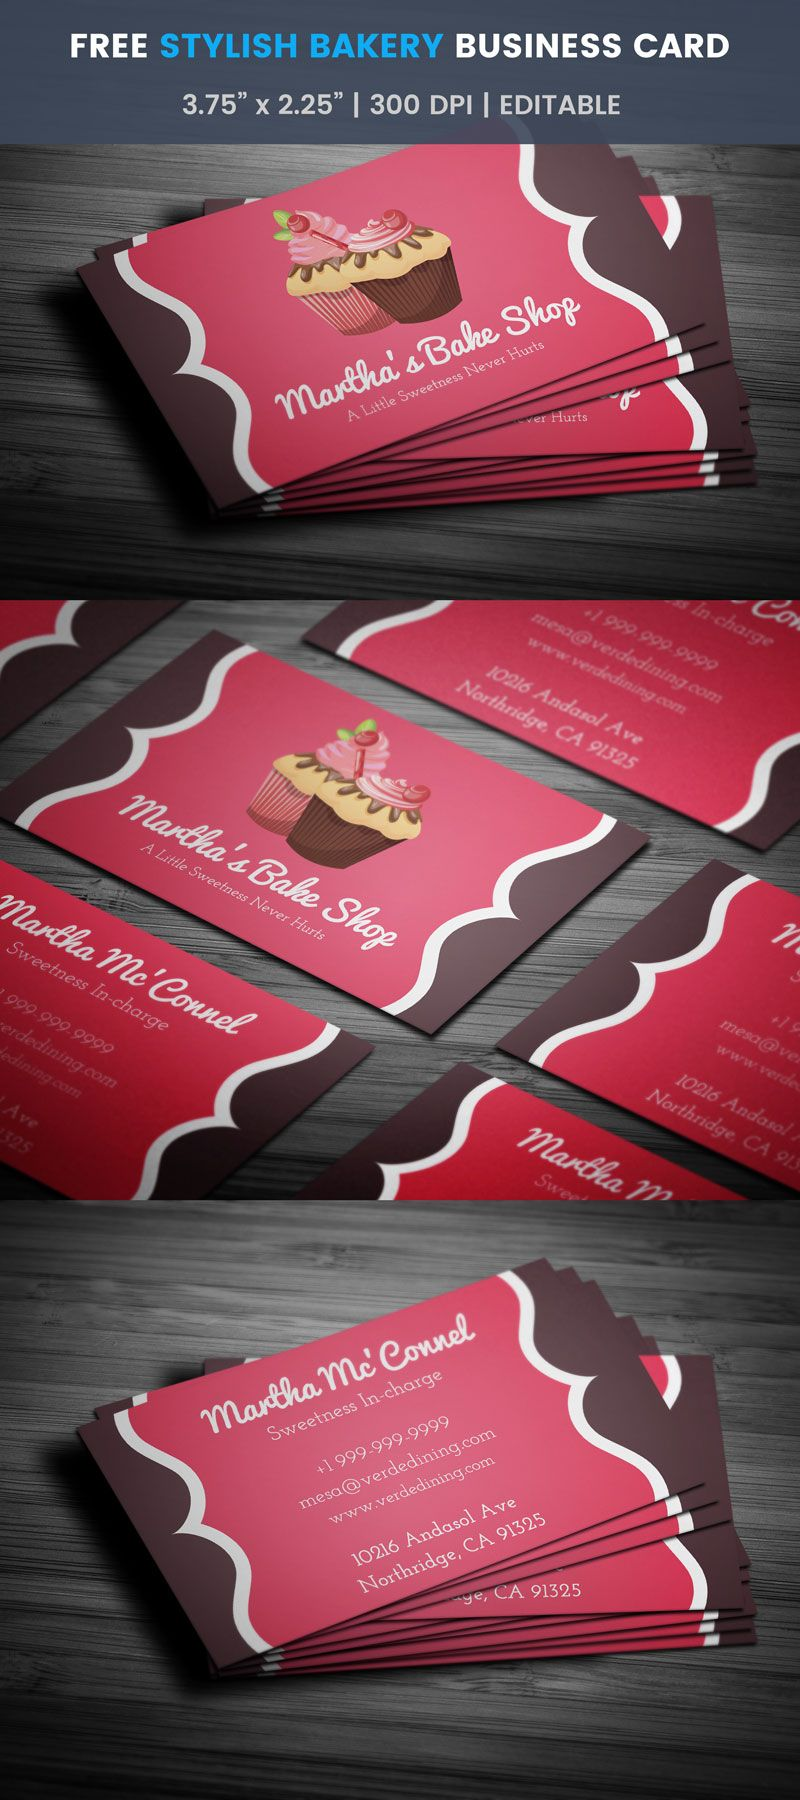 Catchy Stylish Bakery Business Card Template Full Preview Bakery Business Cards Templates Bakery Business Cards Free Business Card Templates